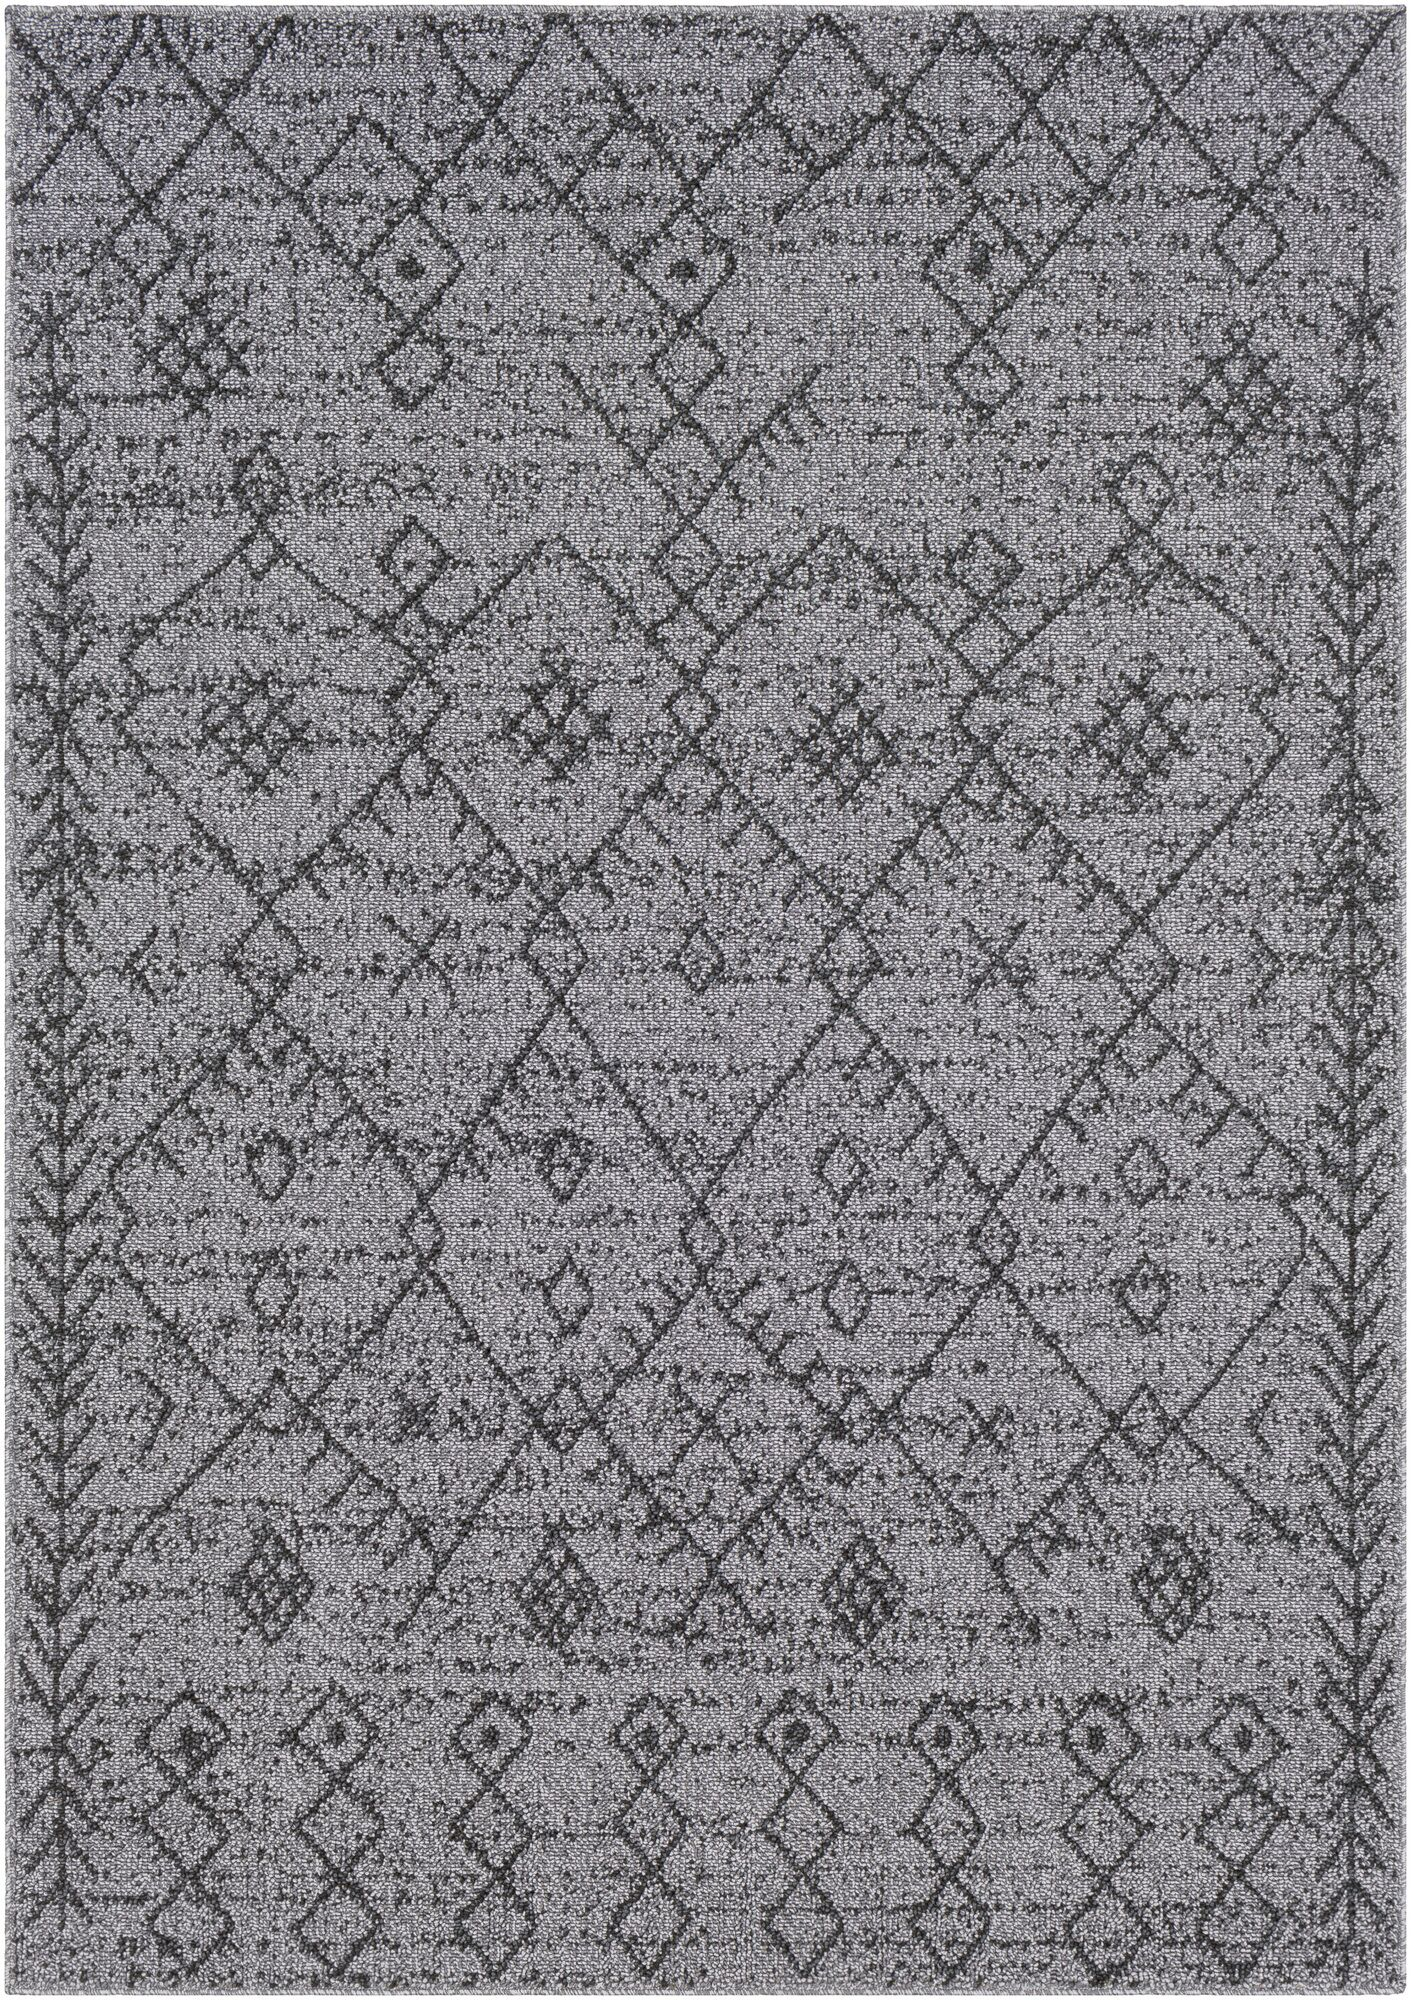 Hudgens Distressed Gray/Charcoal Area Rug Rug Size: Rectangle 9'3